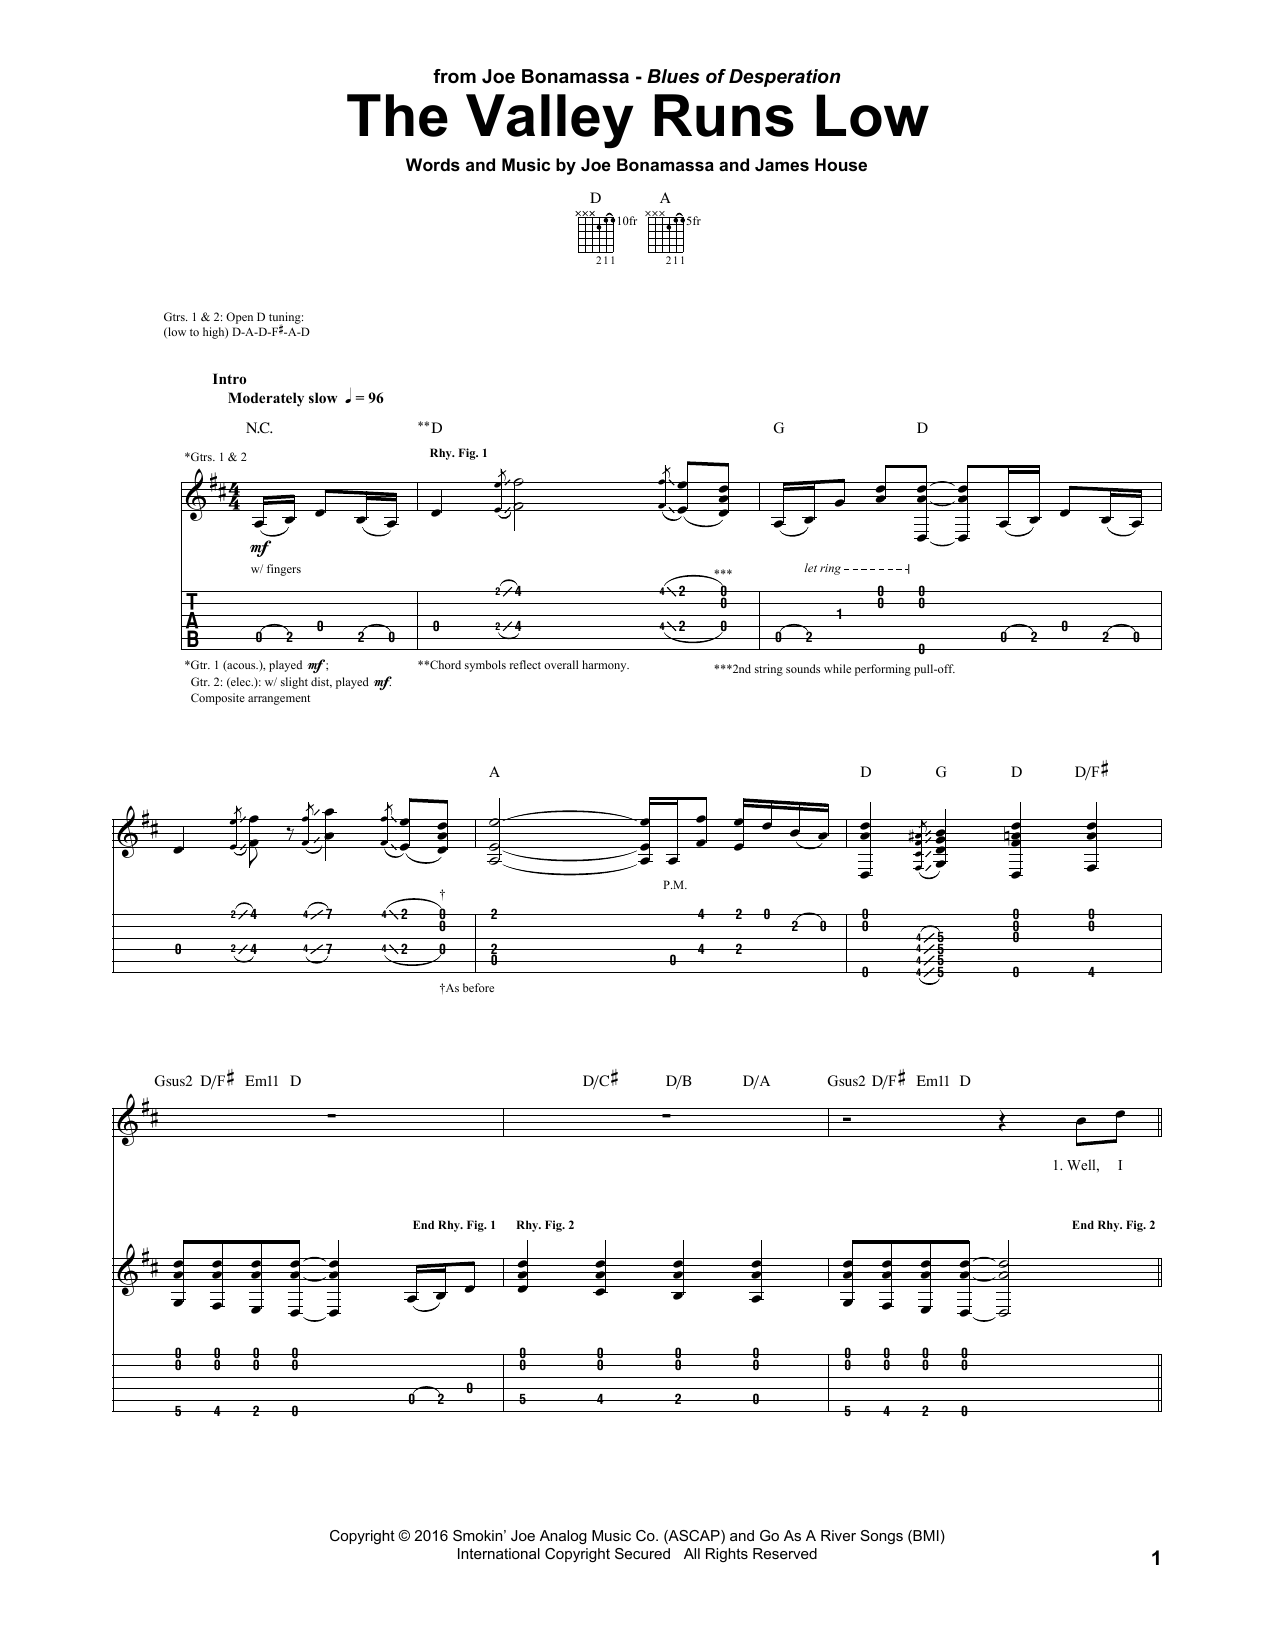 The Valley Runs Low Sheet Music